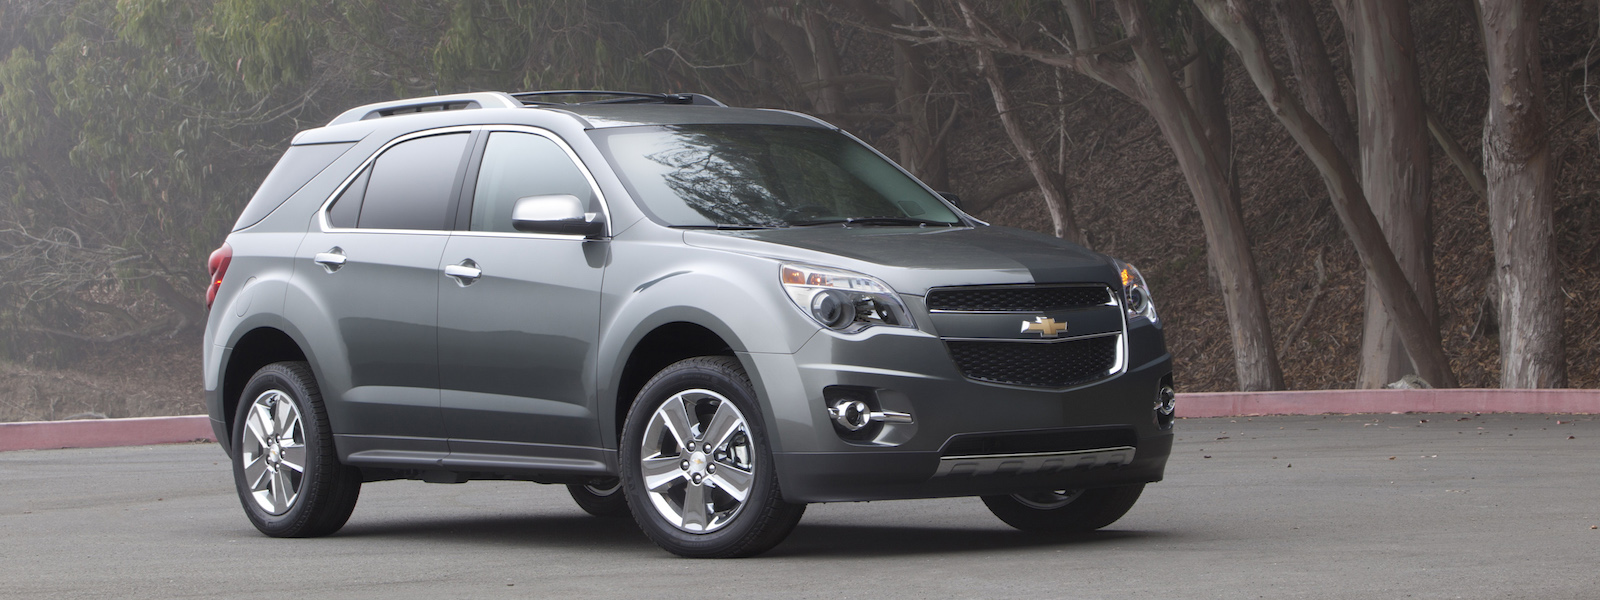 chevrolet equinox ltz news for announced chevy updates the wheel